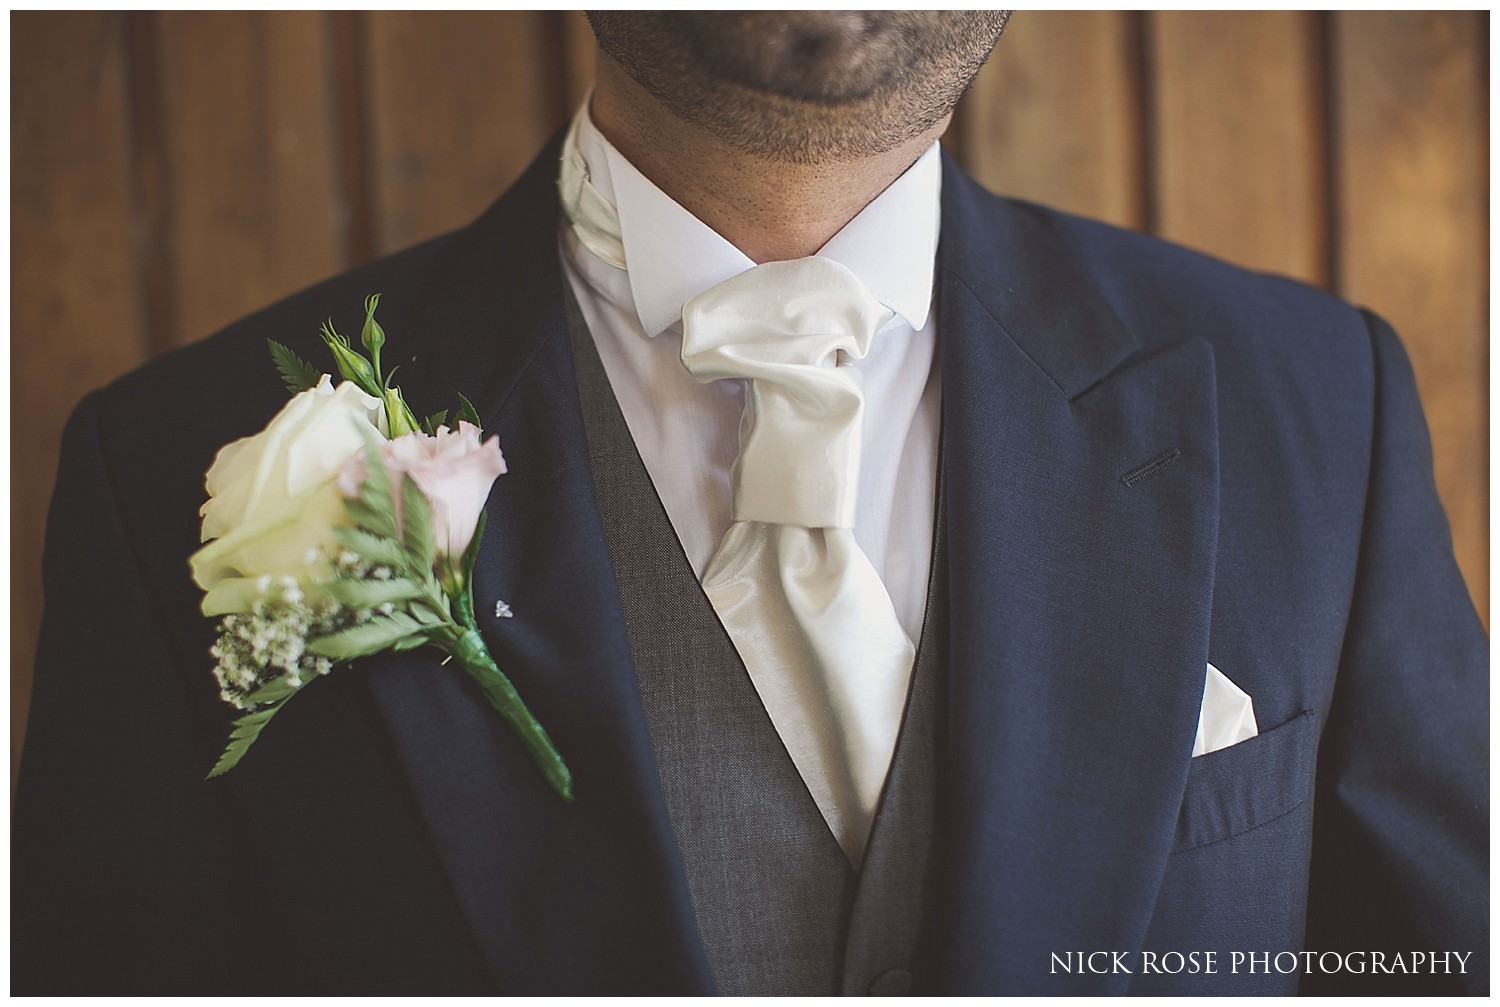 Groom with cream boutonniere getting ready for a Hever Castle wedding in Kent